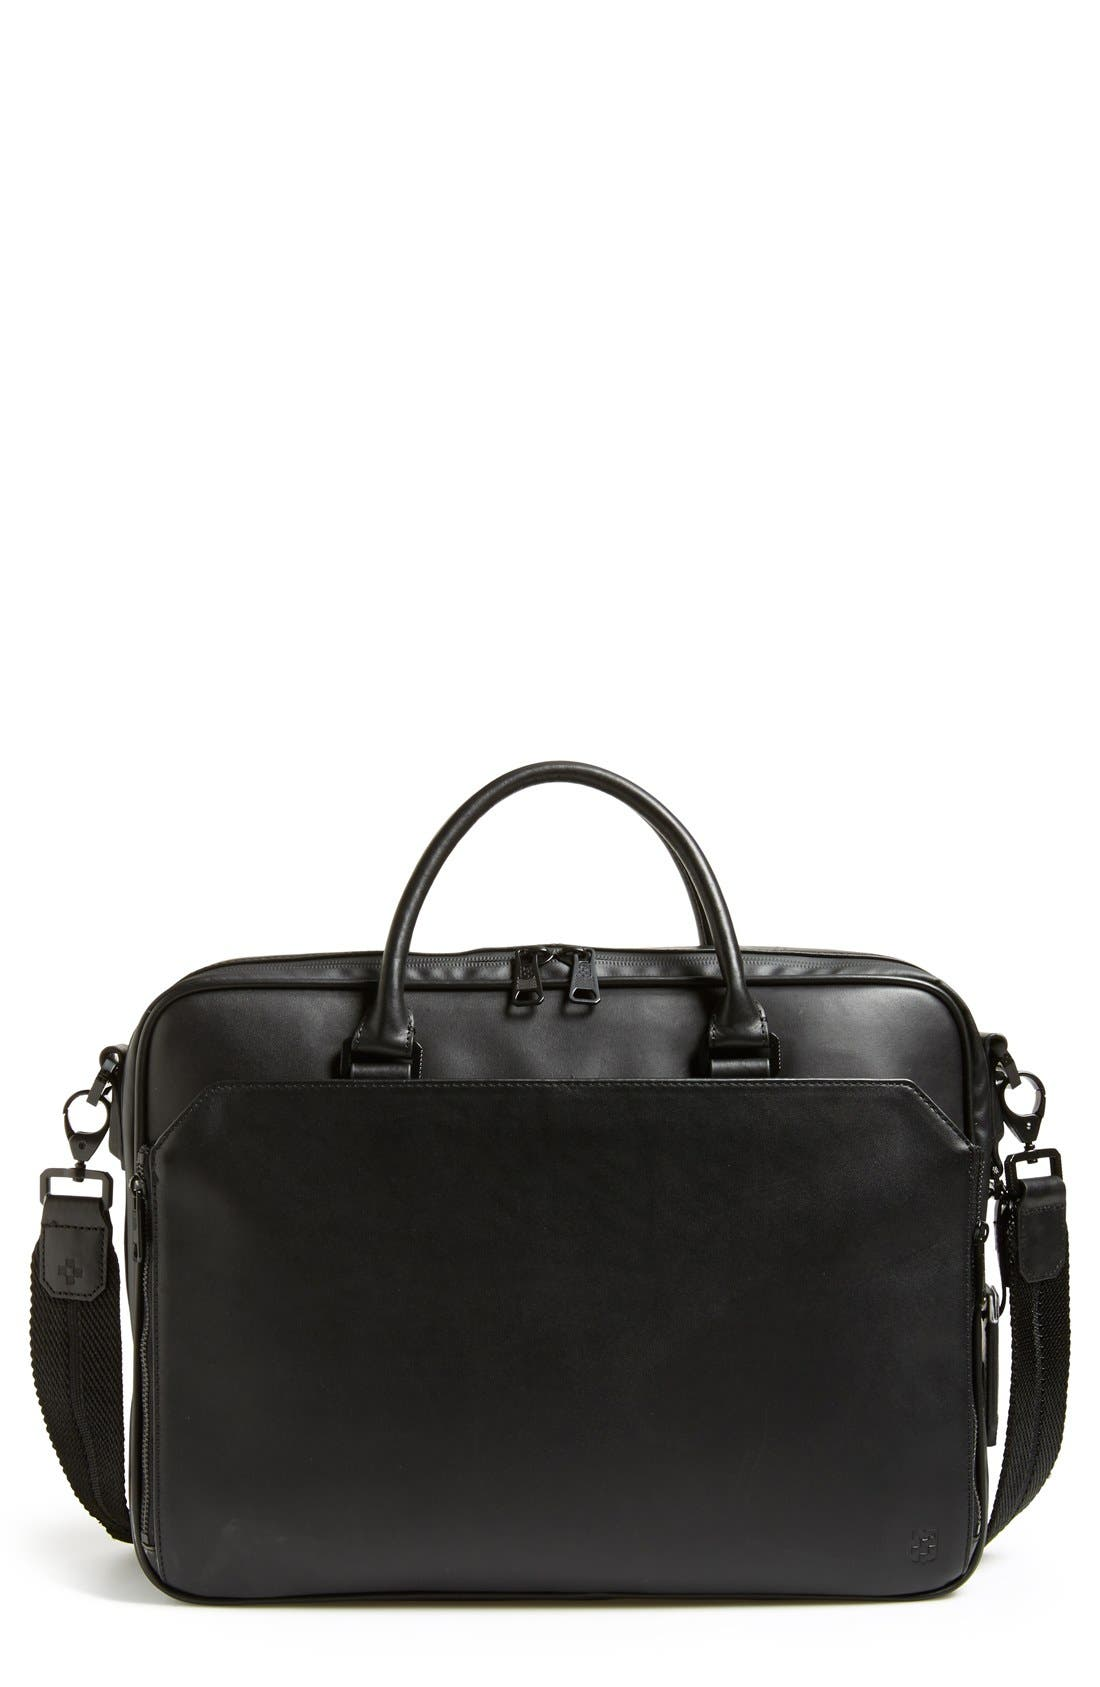 Turin Leather Briefcase,                             Main thumbnail 1, color,                             001